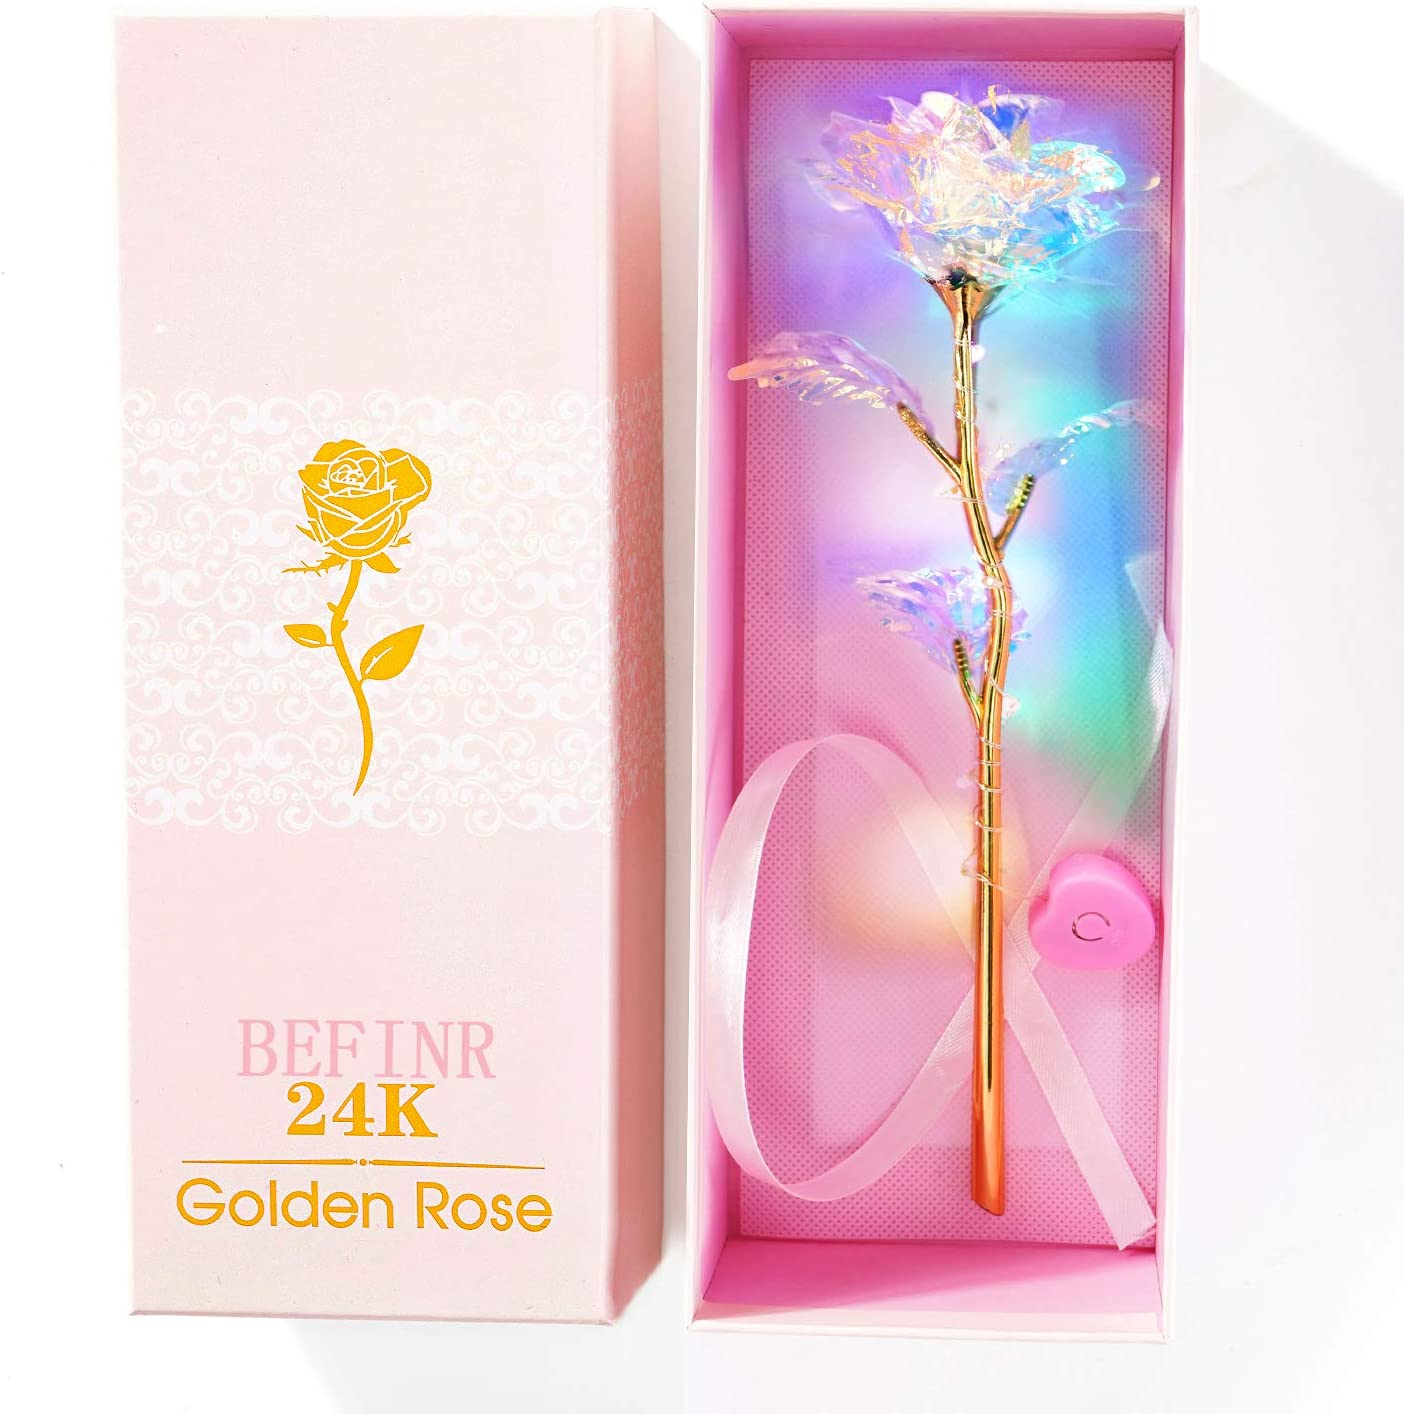 Beferr 24K Colorful Luminous Rose Artificial LED Light Flower Unique Gifts Mother's Day Thanksgiving Valentine's Day Girl's Birthday Party, Best Gifts for Wife Girl Friend Women